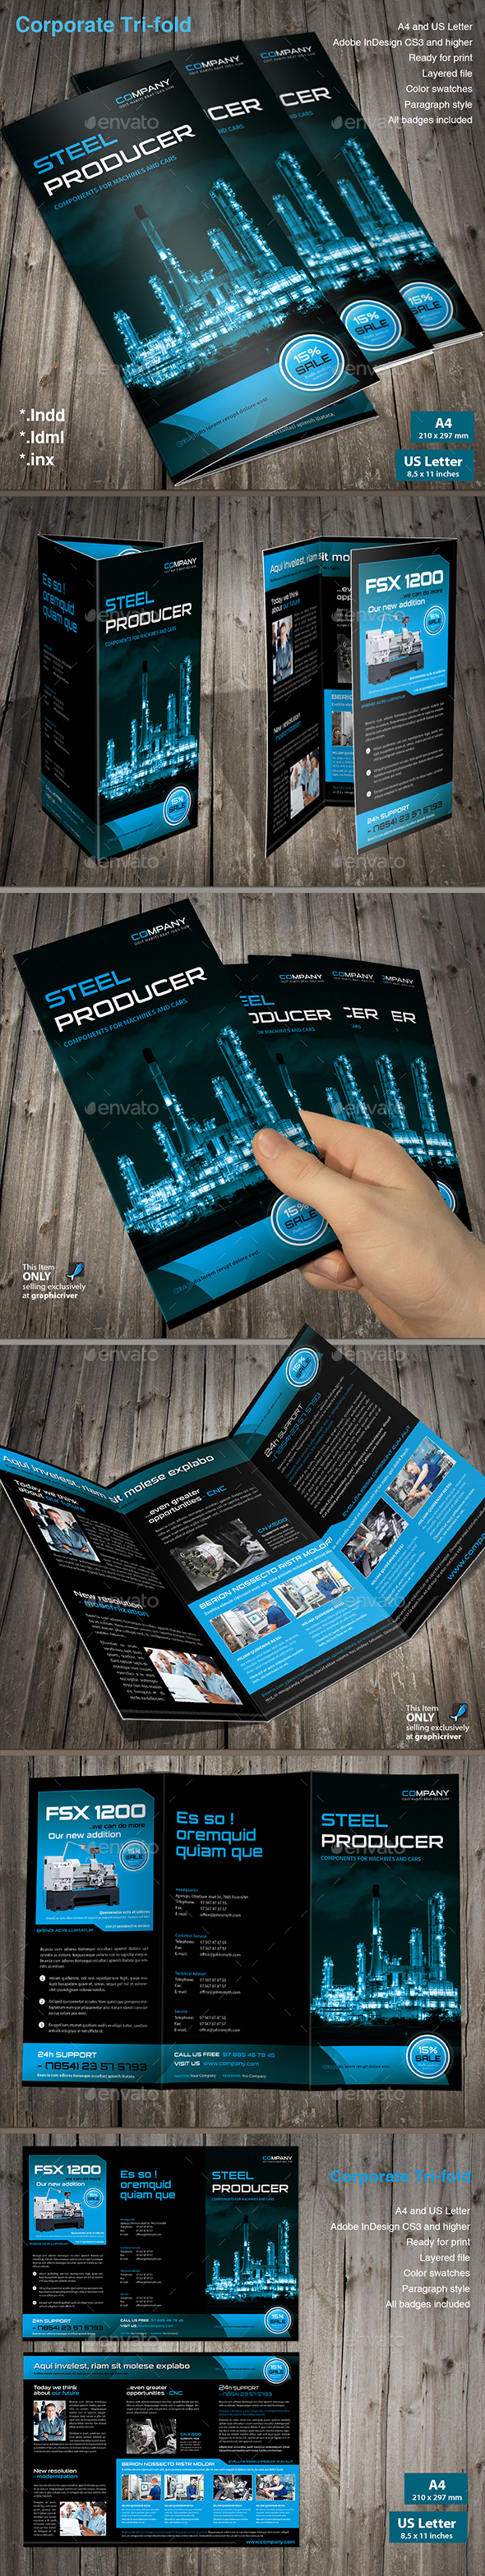 Tri-fold Products Offer - Corporate Brochures